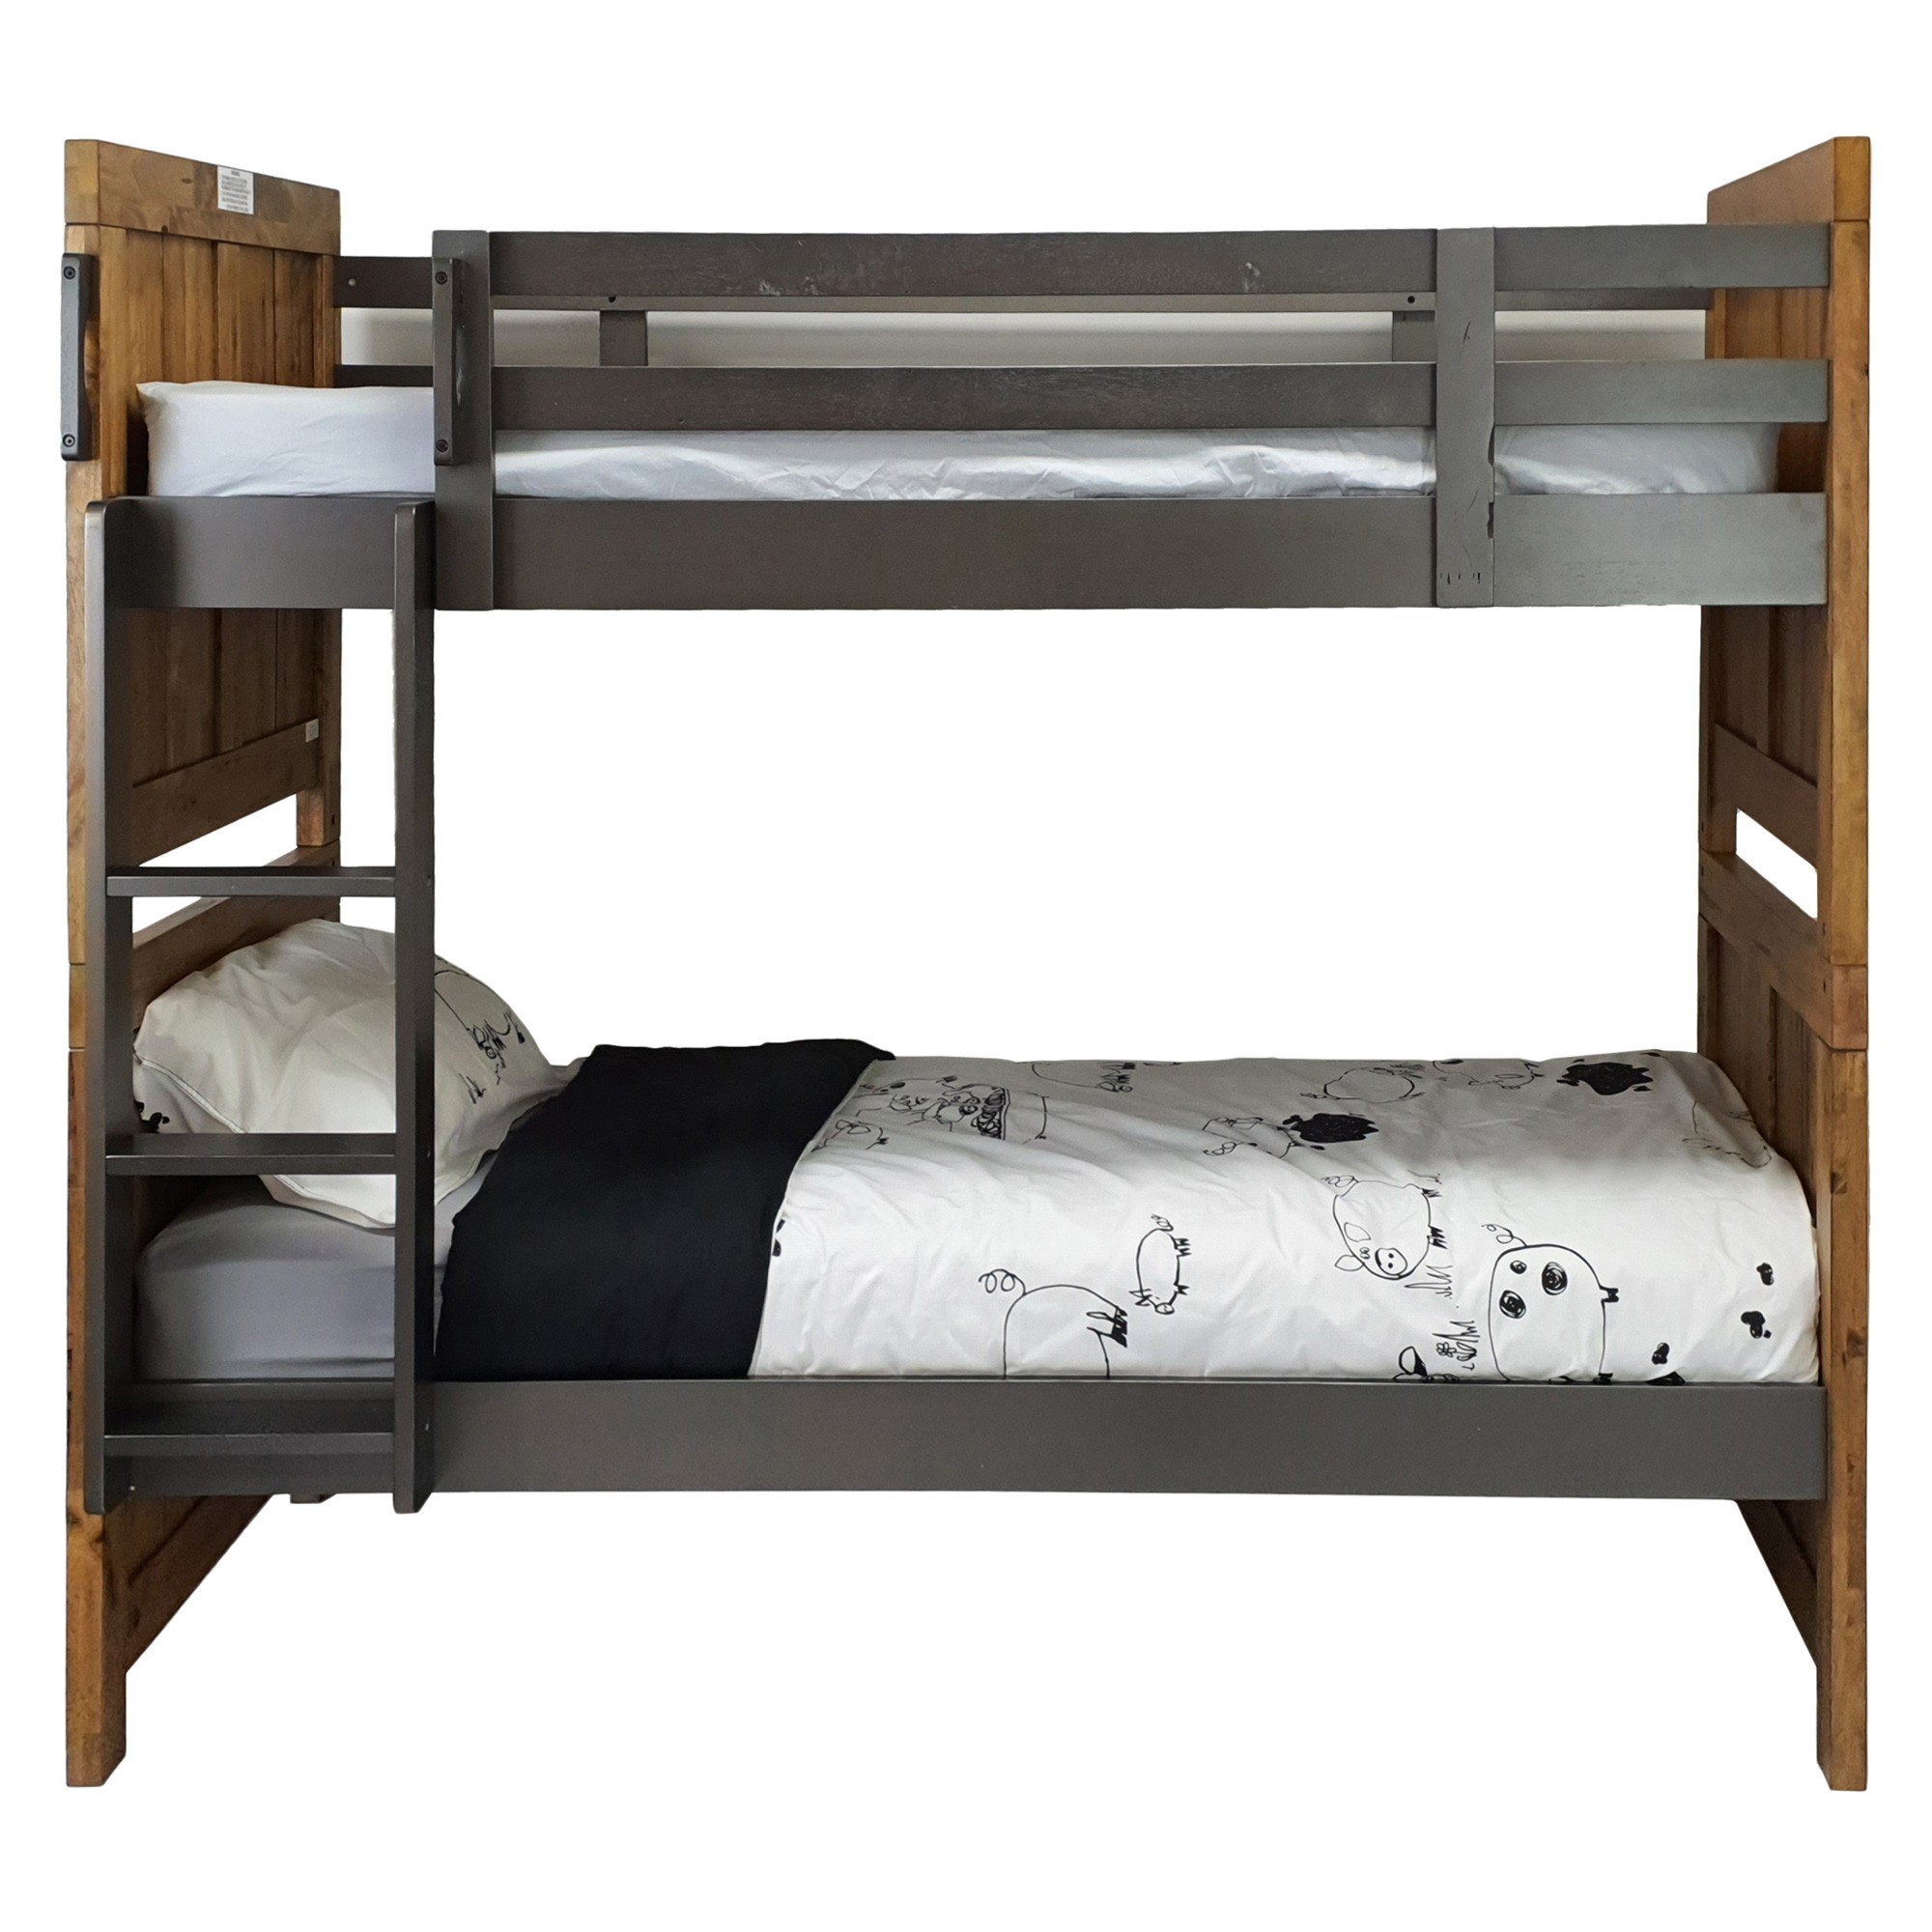 Jayden Wooden Bunk Bed, King Single